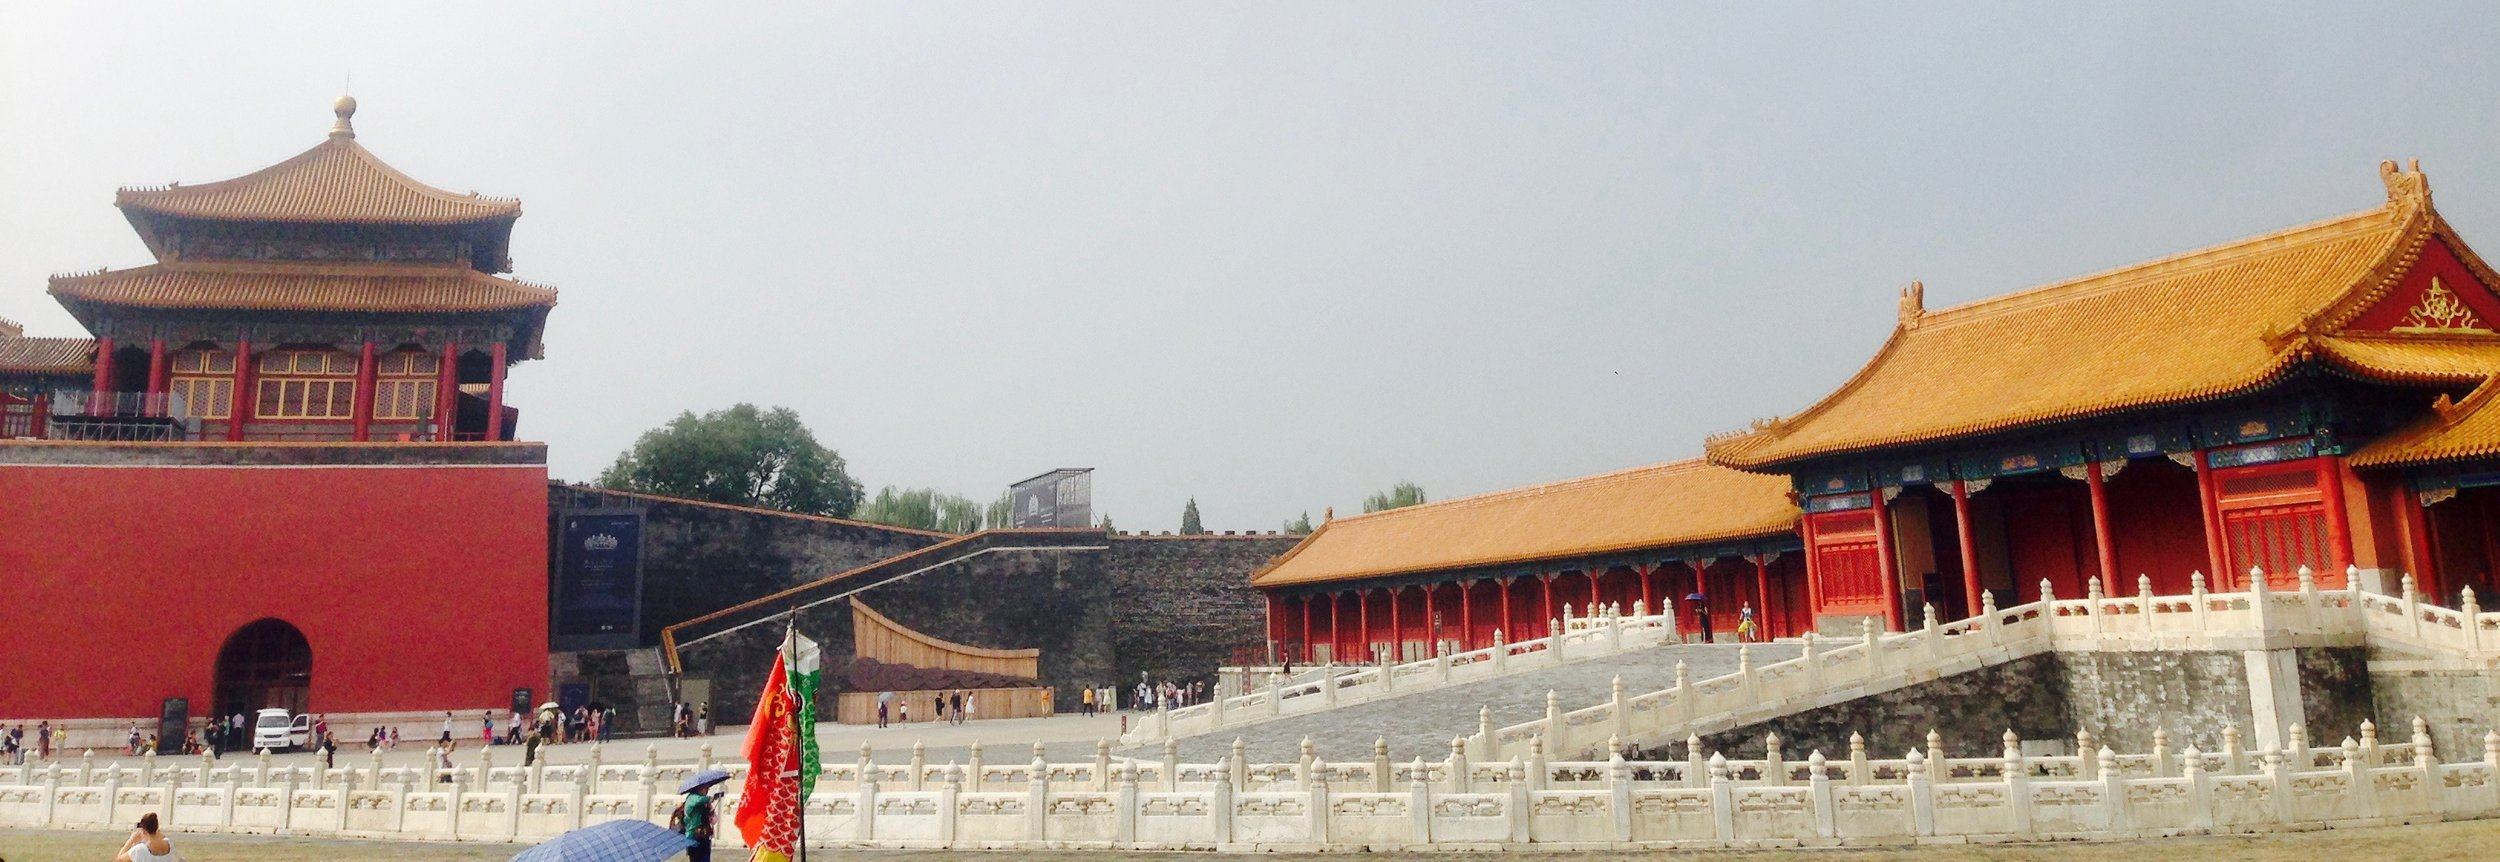 What happens in the Forbidden City stays in the Forbidden City